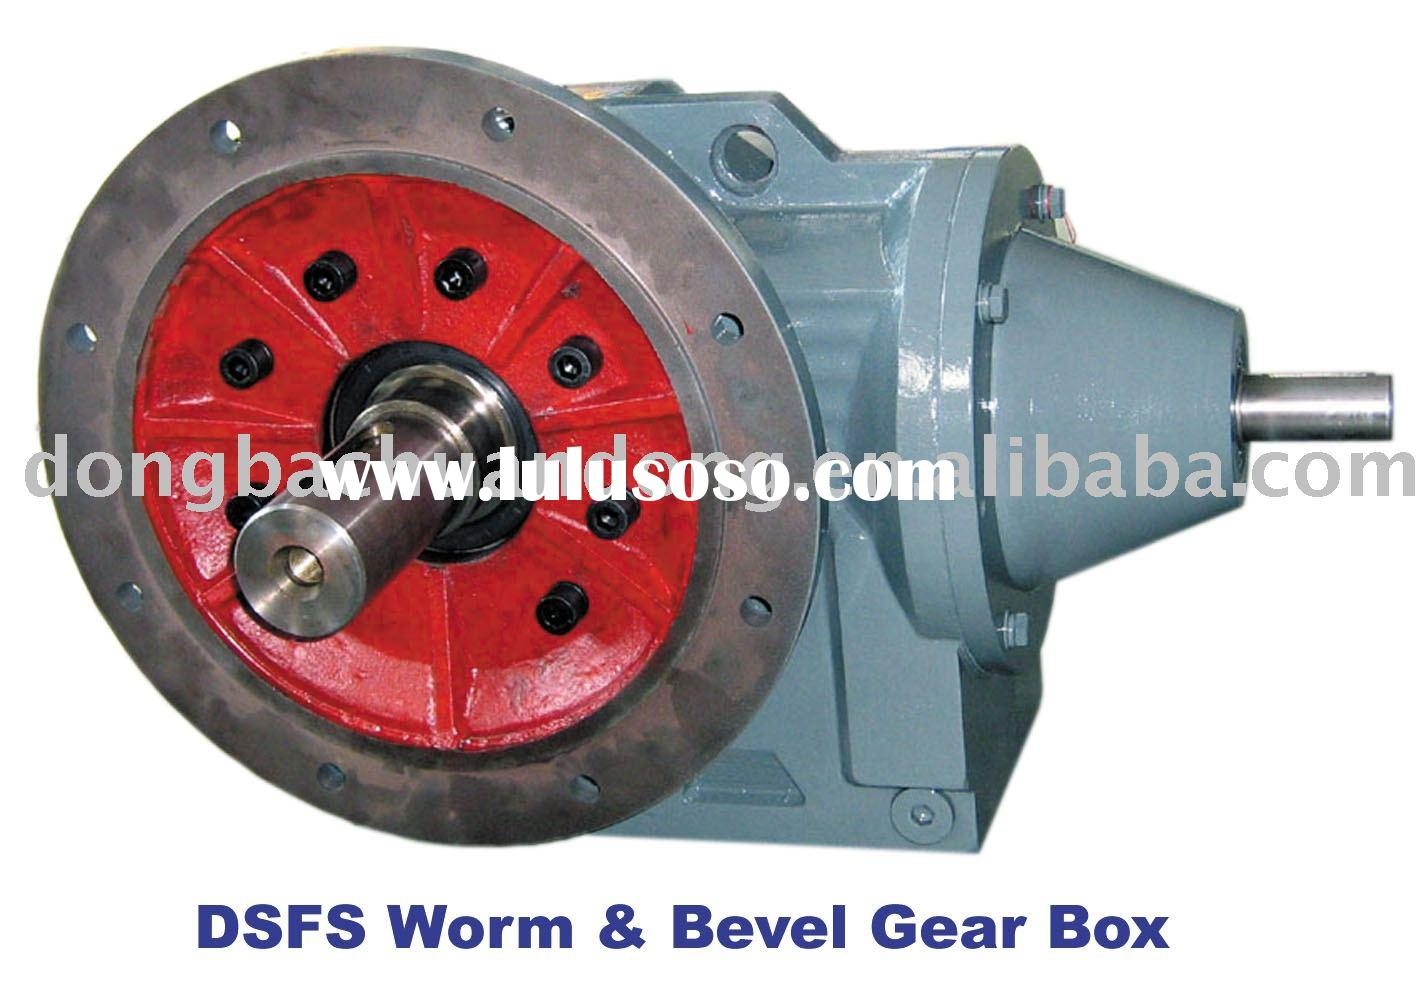 DS series worm & bevel gearbox(gear reducer)